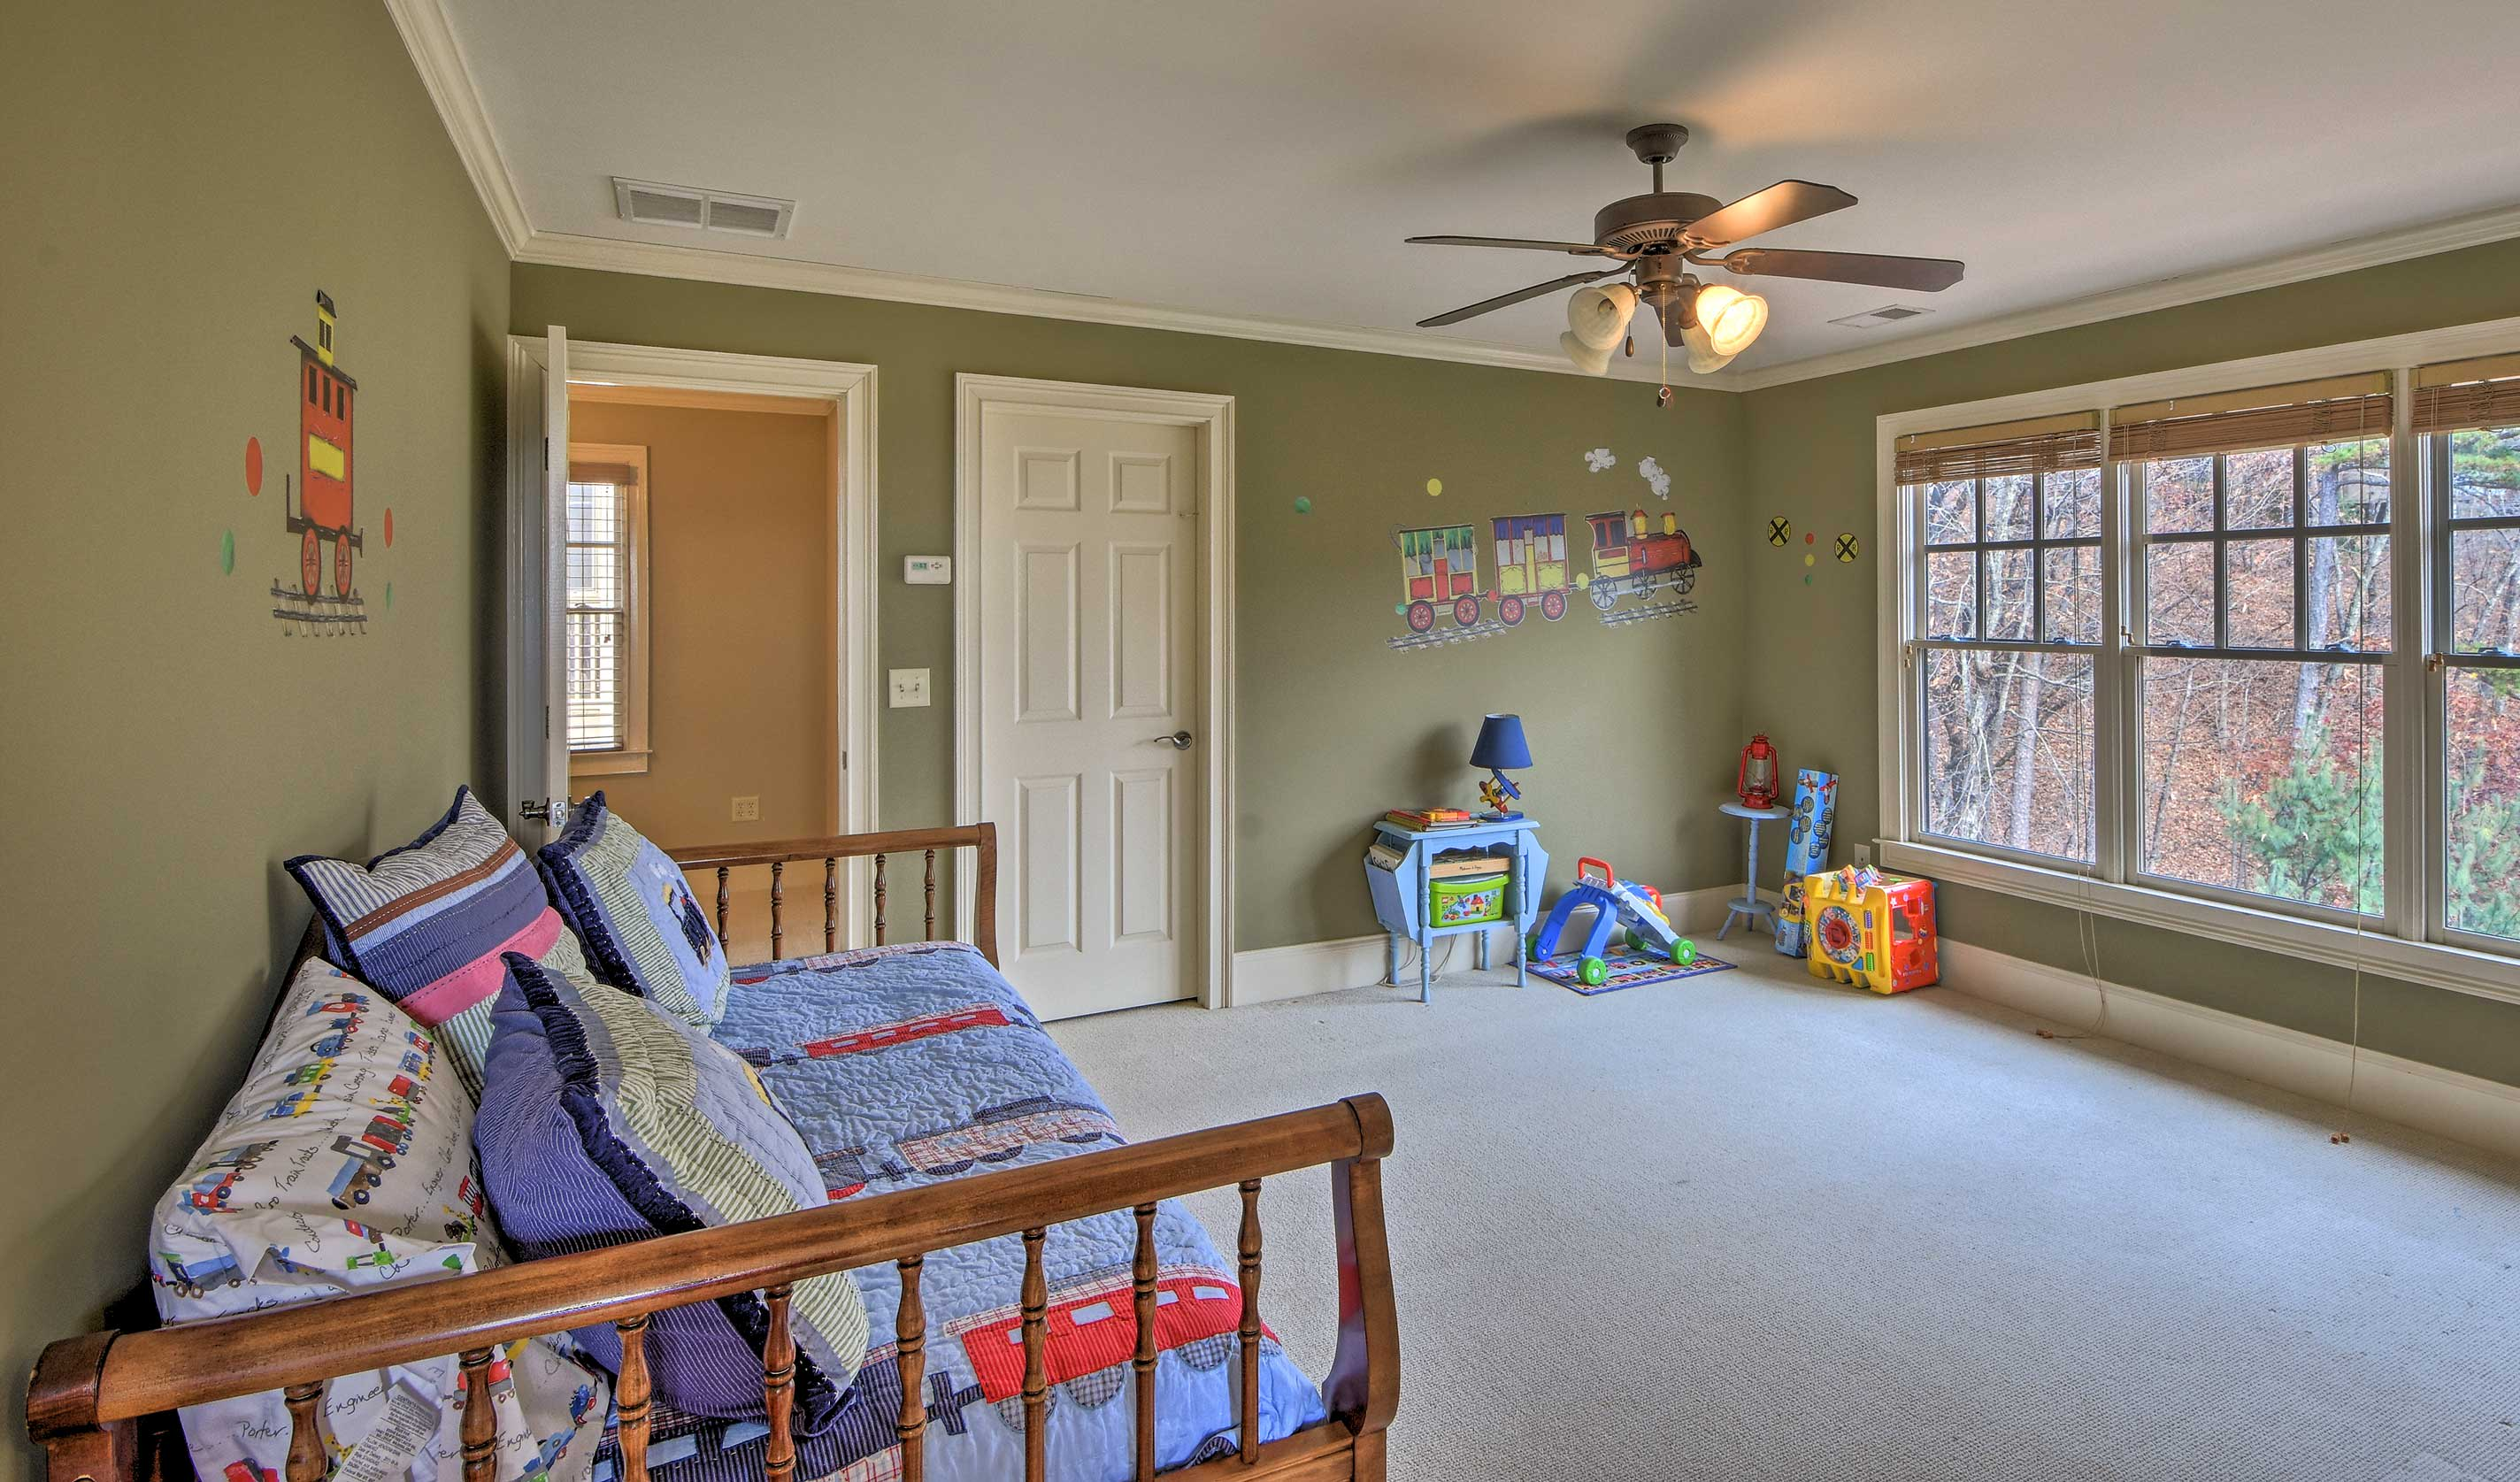 Kids will quickly claim this room as their own!